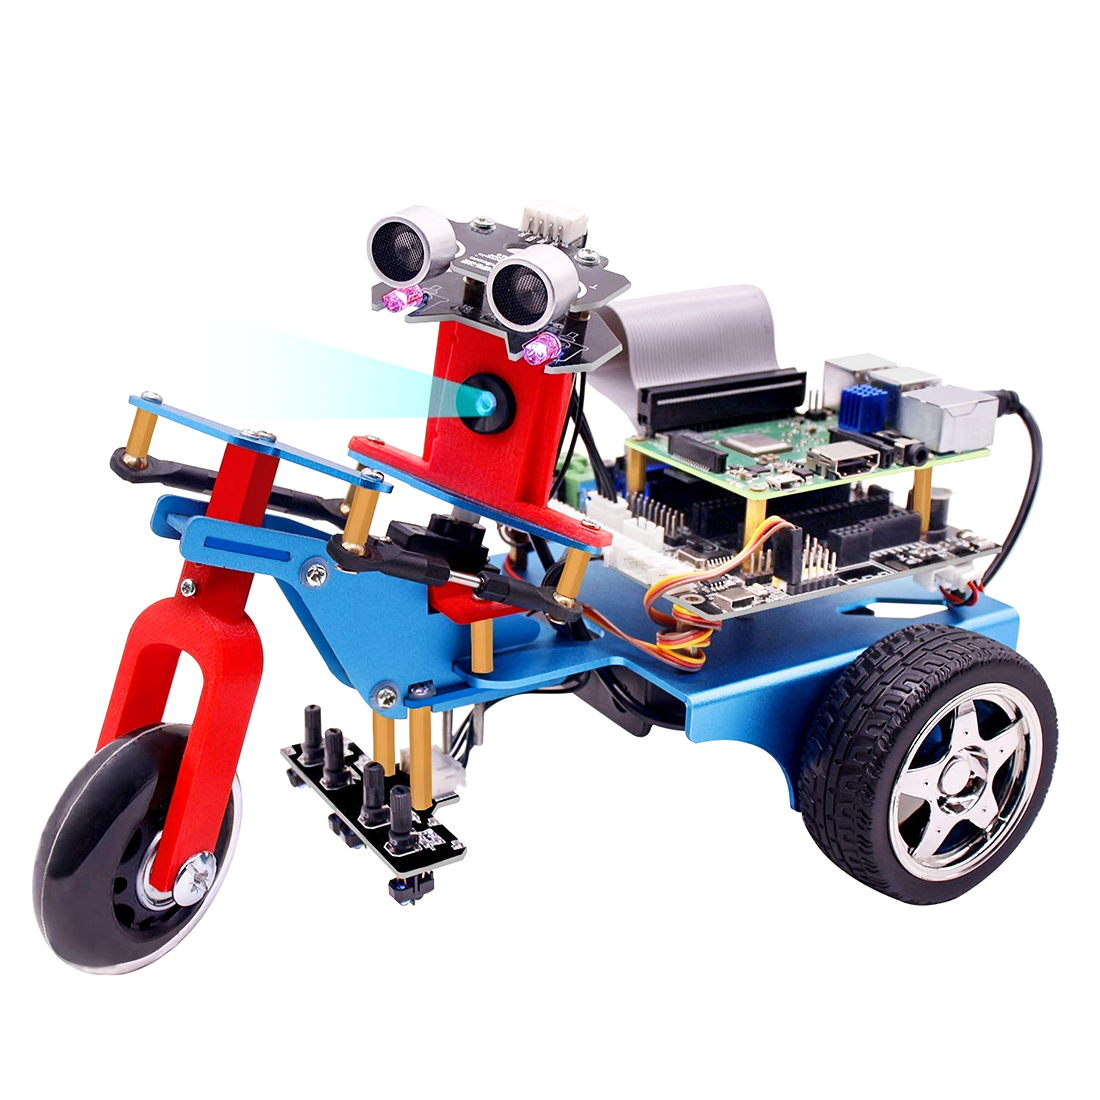 Three-Wheeled Car Smart Robot Kit Programmable Learning Toy With HD Camera DIY Robot Kit With 4G/2G/1G Raspberry 4B For Children